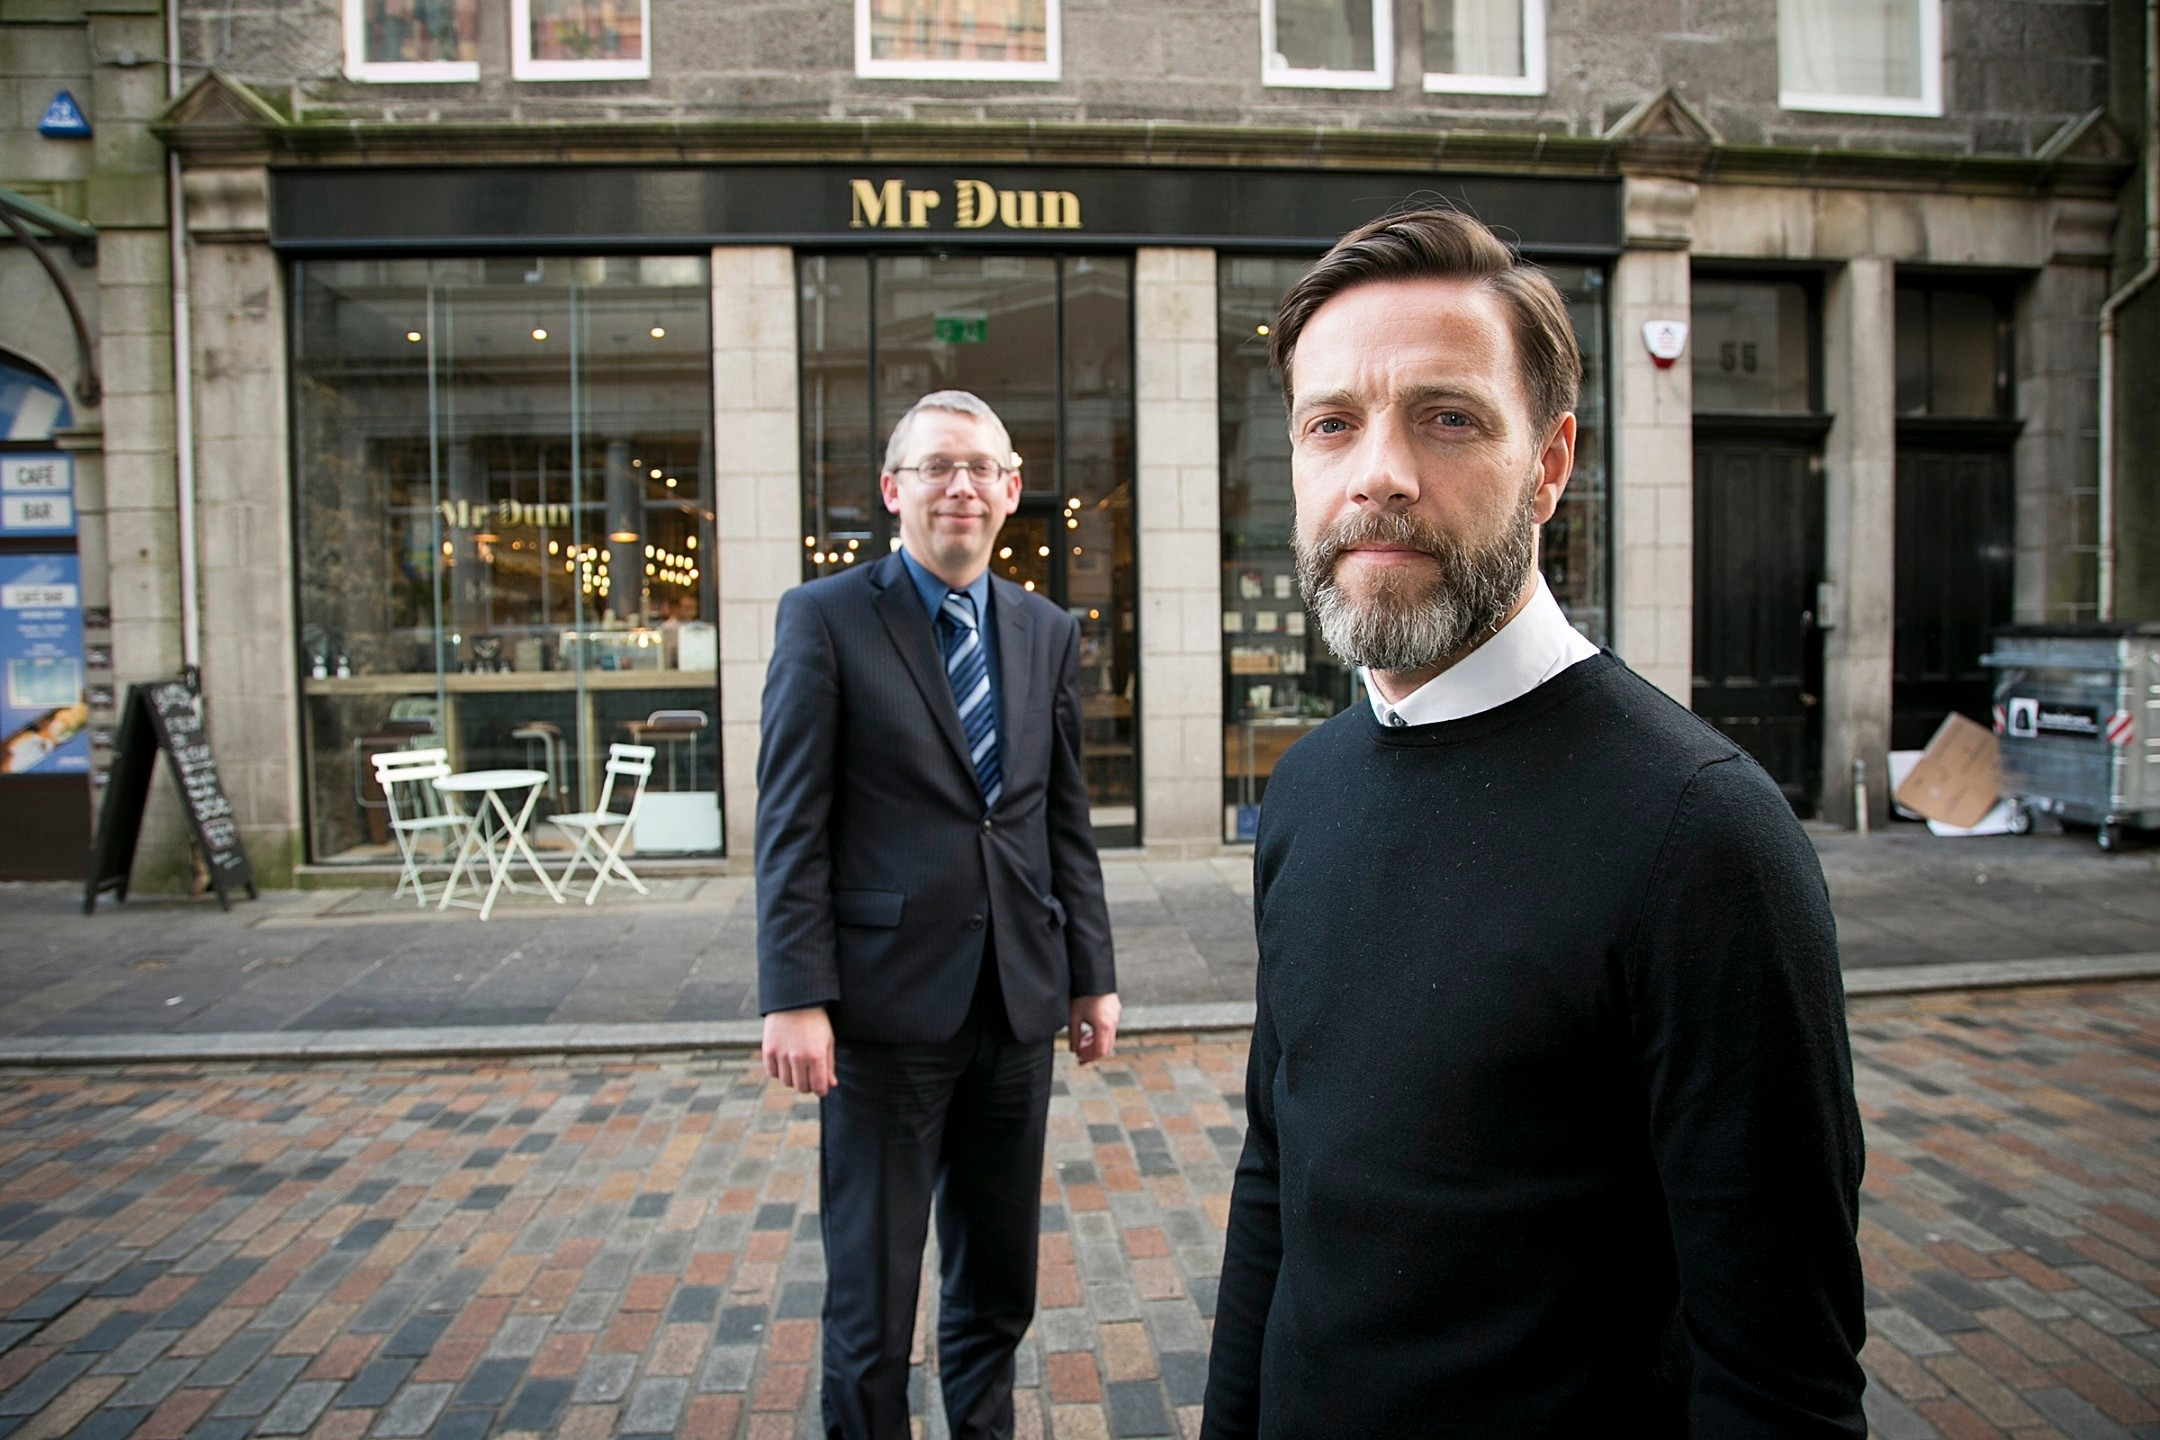 Owner, Dean Walker, in foreground and Douglas Henderson, regional manager at Bank of Scotland in background